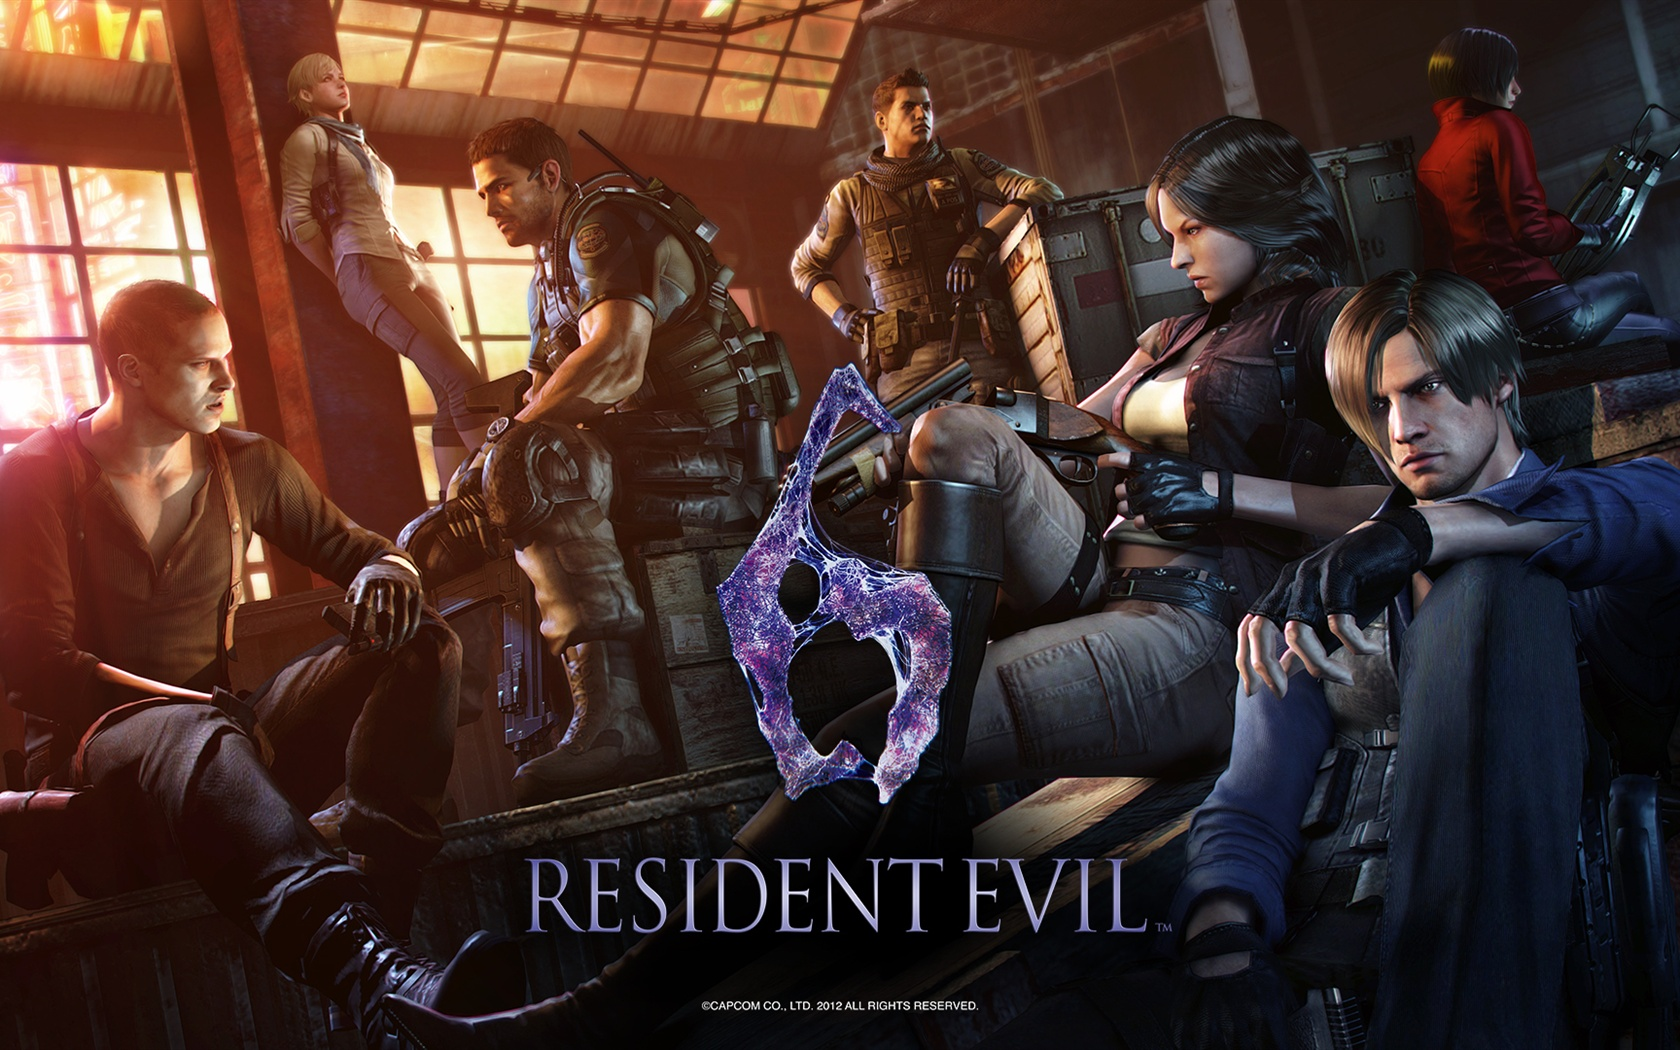 Wallpaper Resident Evil 6 Game Hd 1920x1080 Full Hd 2k Picture Image